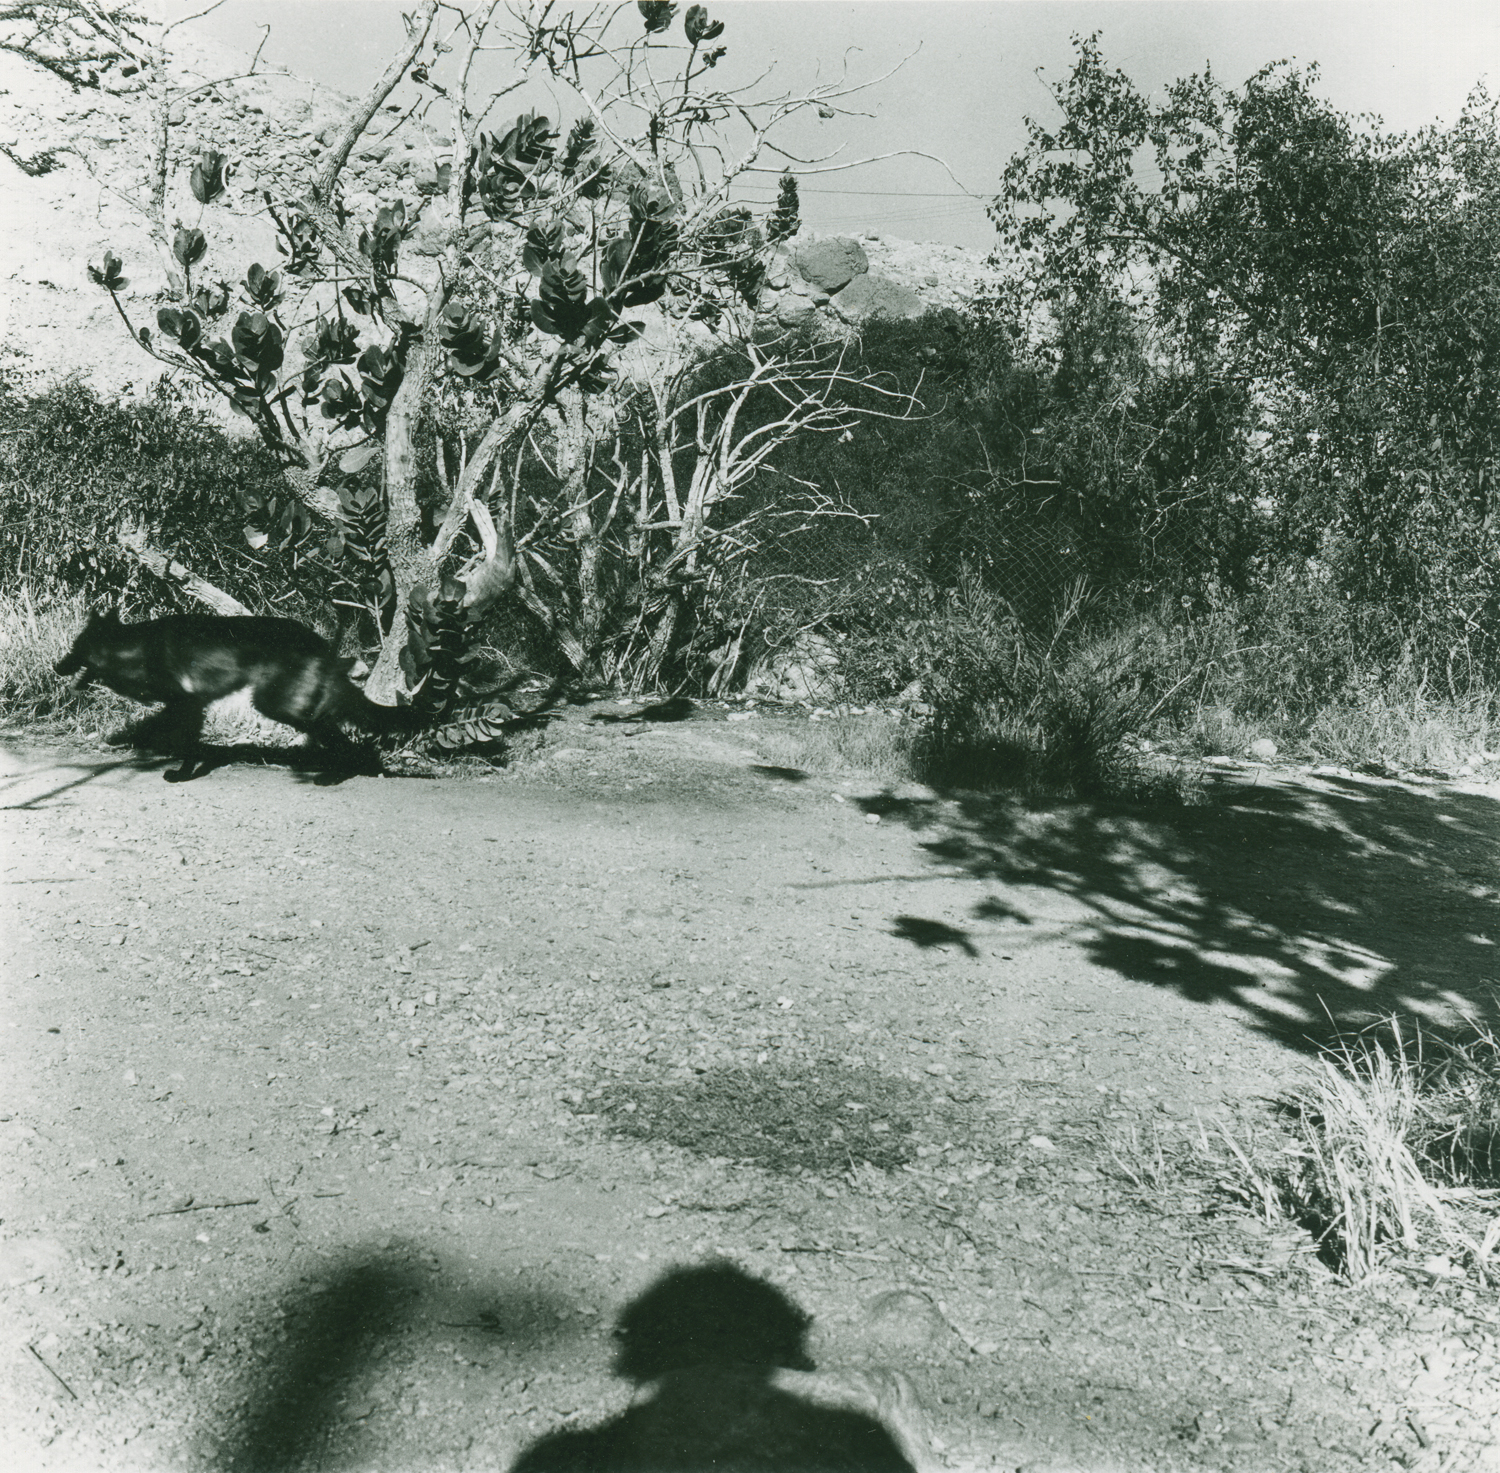 img007_Shadow with a dog_tight_lowres.jpg